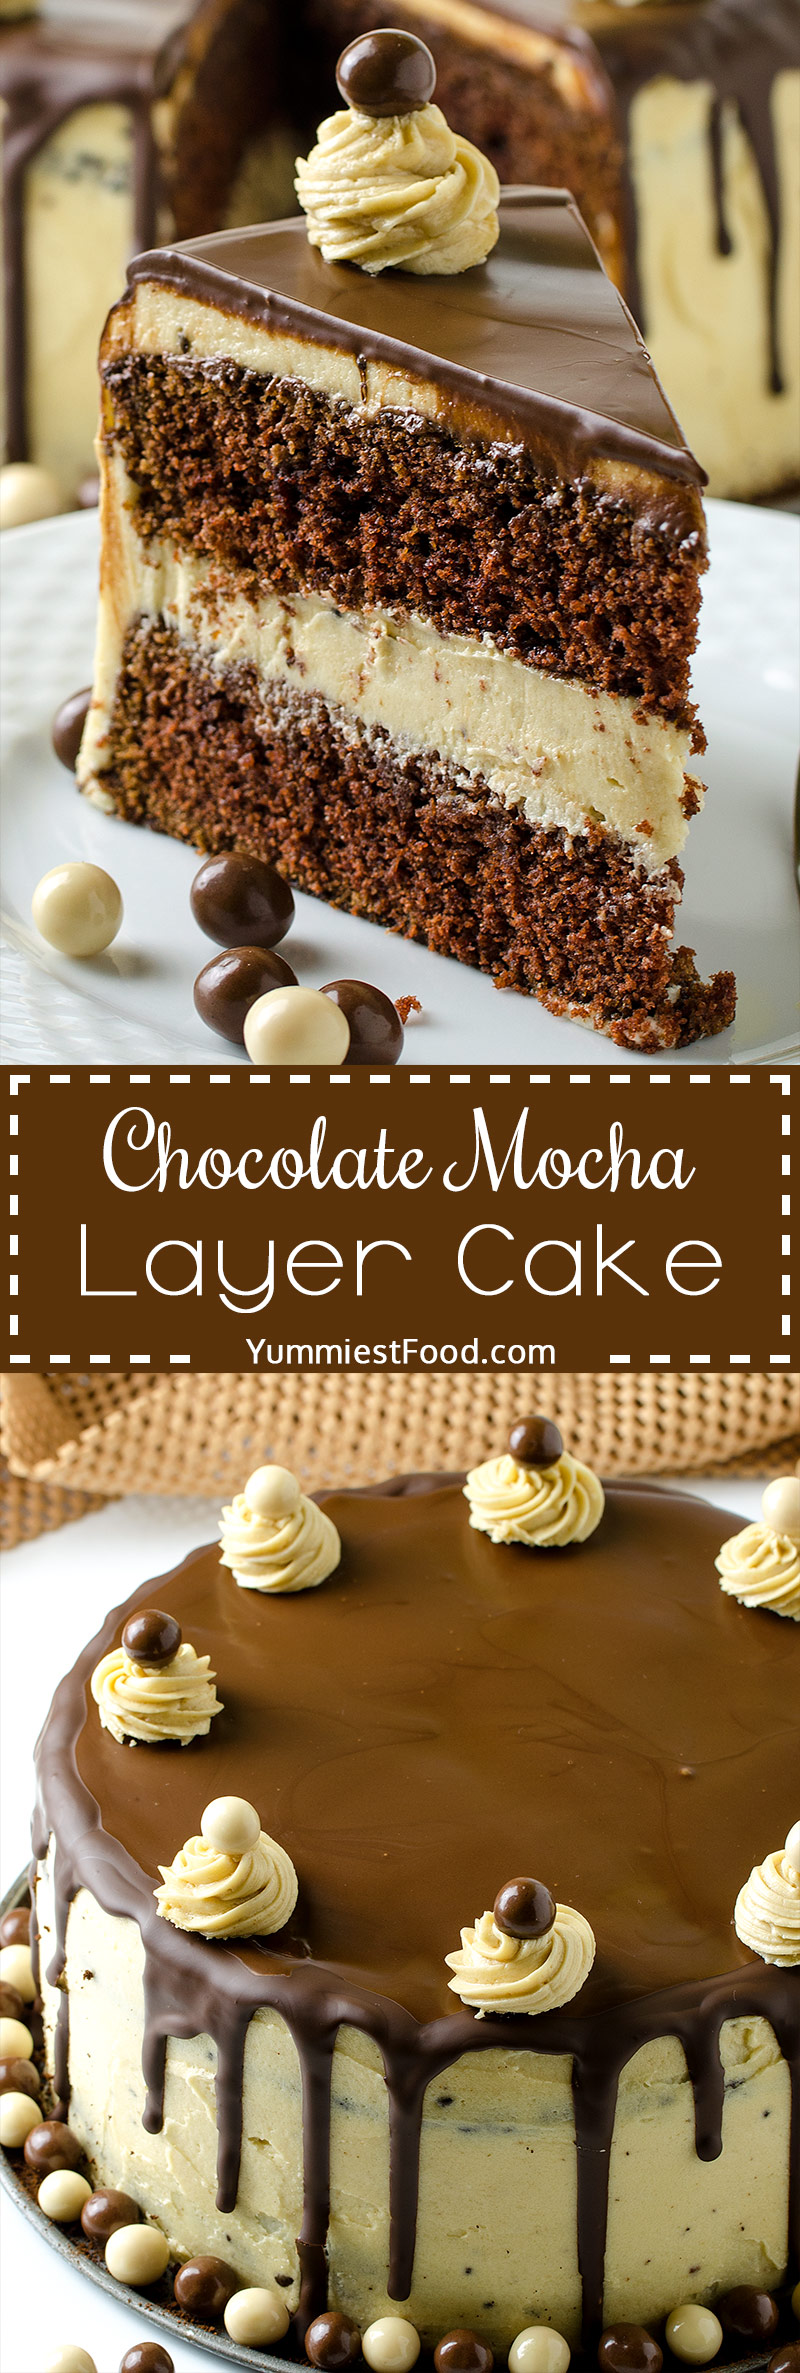 CHOCOLATE MOCHA LAYER CAKE – Rich and delicious chocolate cake with perfect mocha buttercream! Favorite cup of coffee in cake form a truly decadent treat!